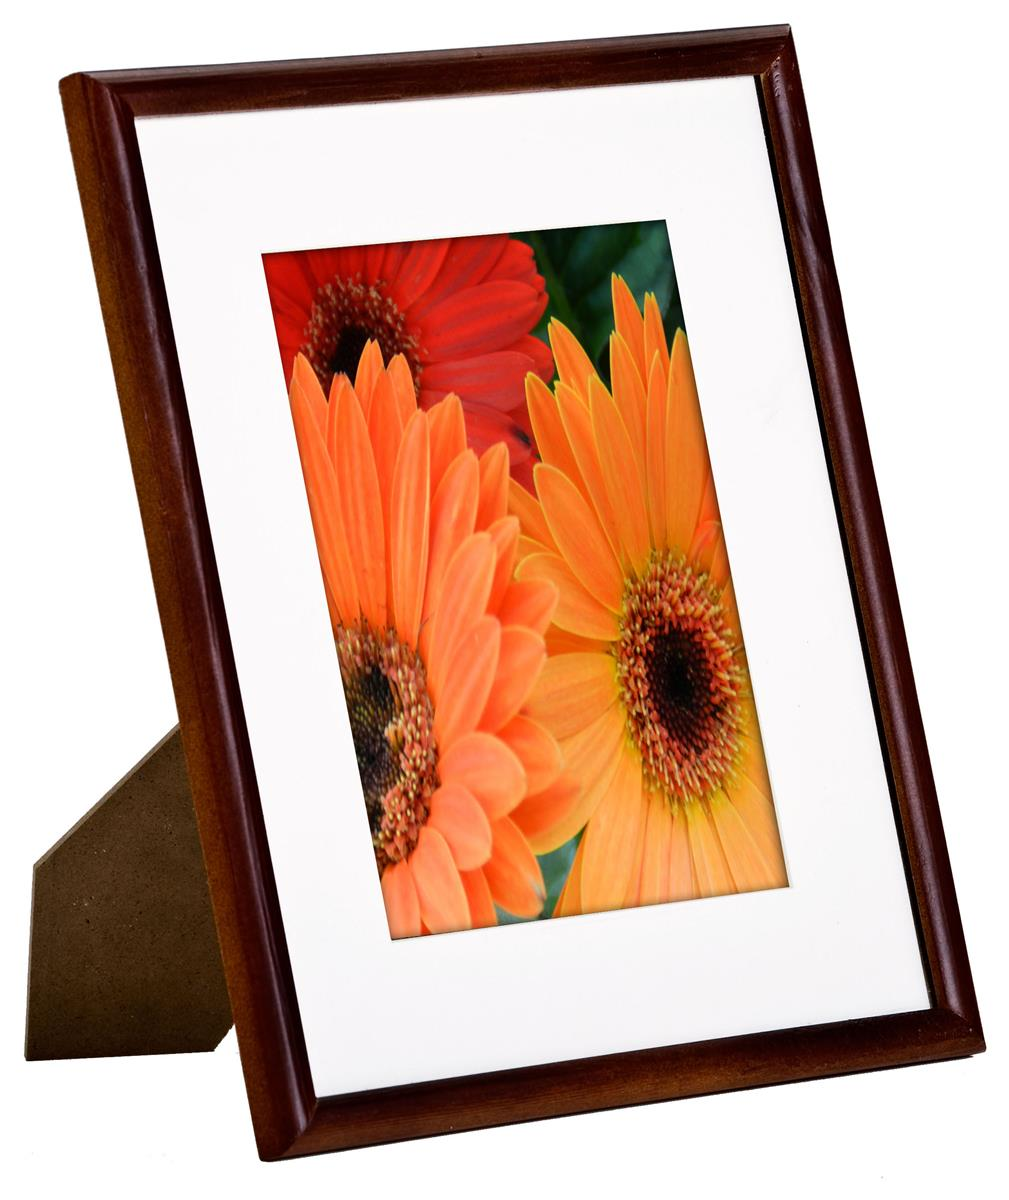 8 X 10 Mahogany Photo Frames Made Of Real Wood